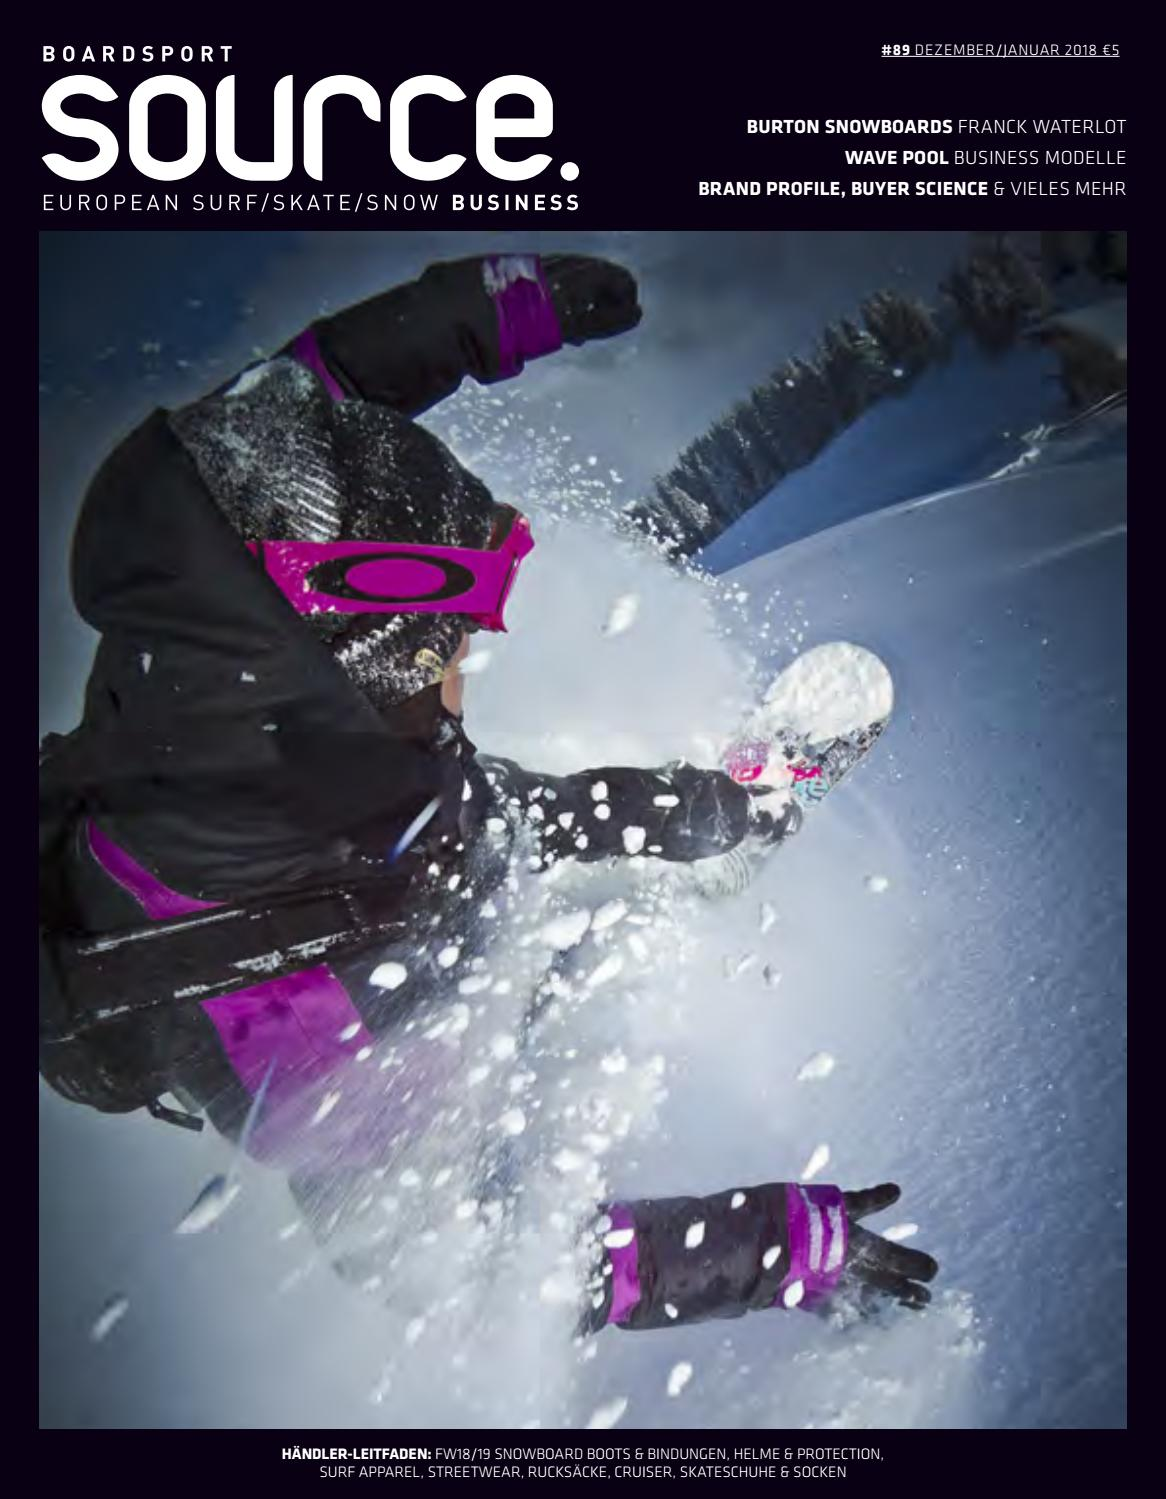 Future Pool Abdeckung Protect Boardsport Source Issue 89 December January 2018 German By